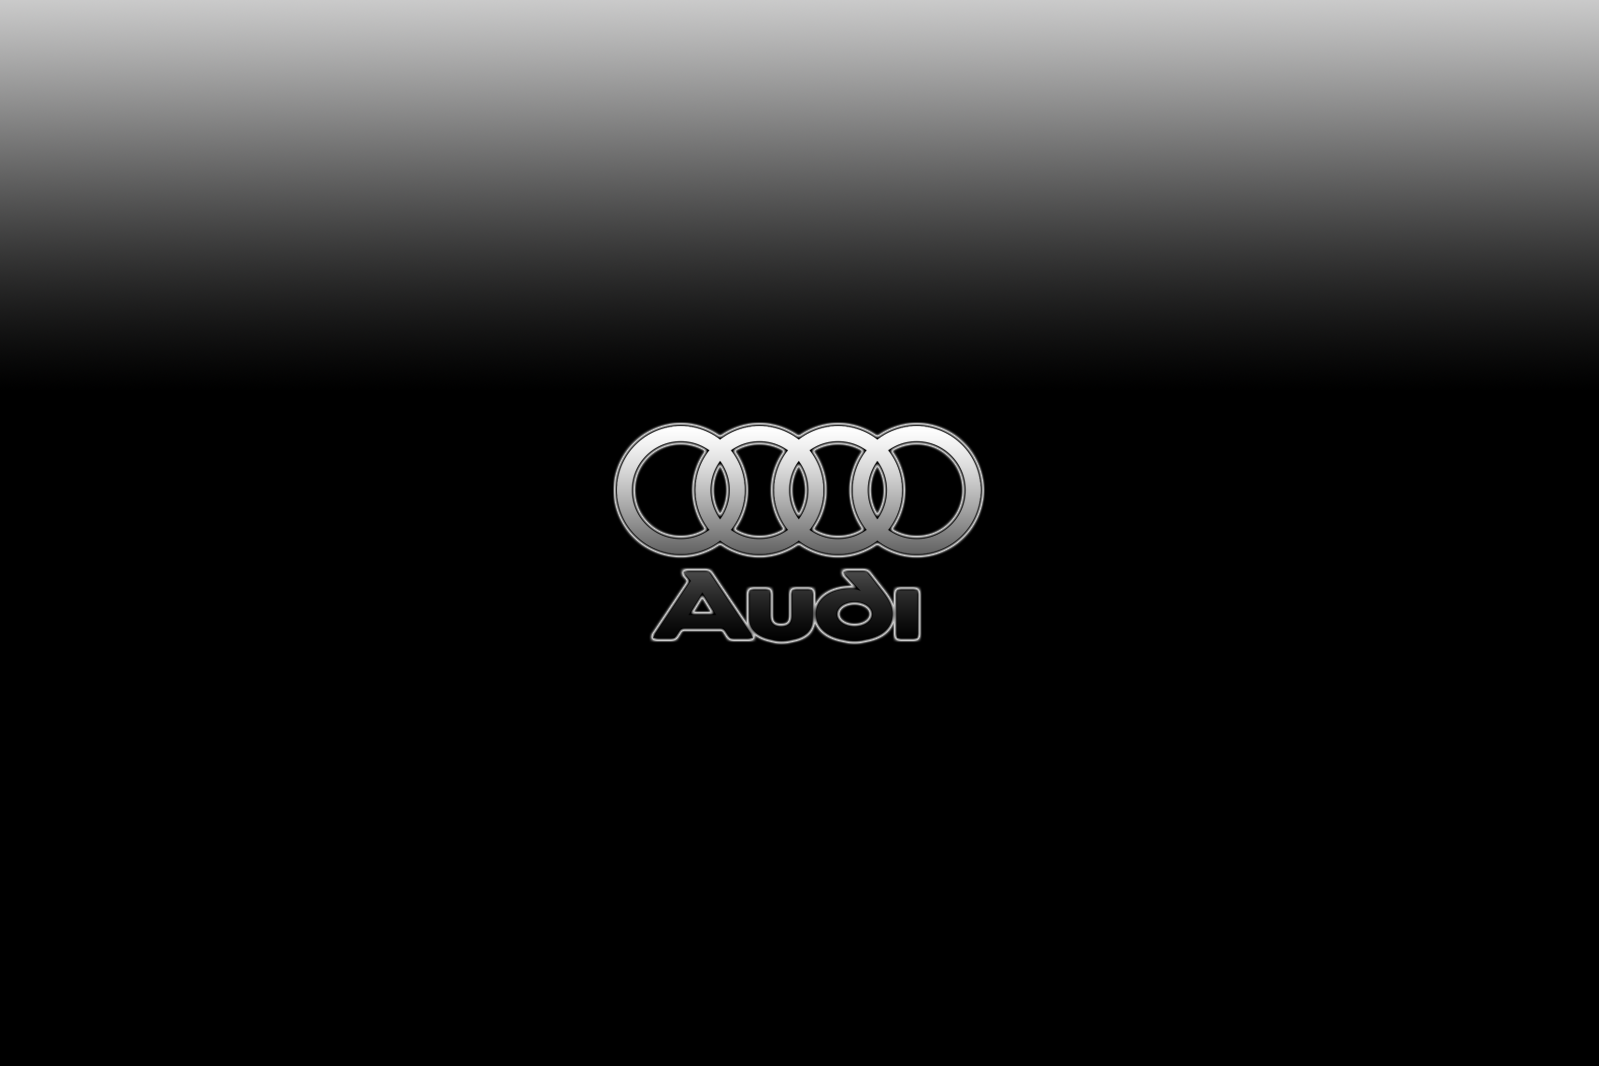 Download free audi logo wallpapers for your mobile phone by nice mercedes benz logo vector car images hd audi logo the car logo and short info voltagebd Images